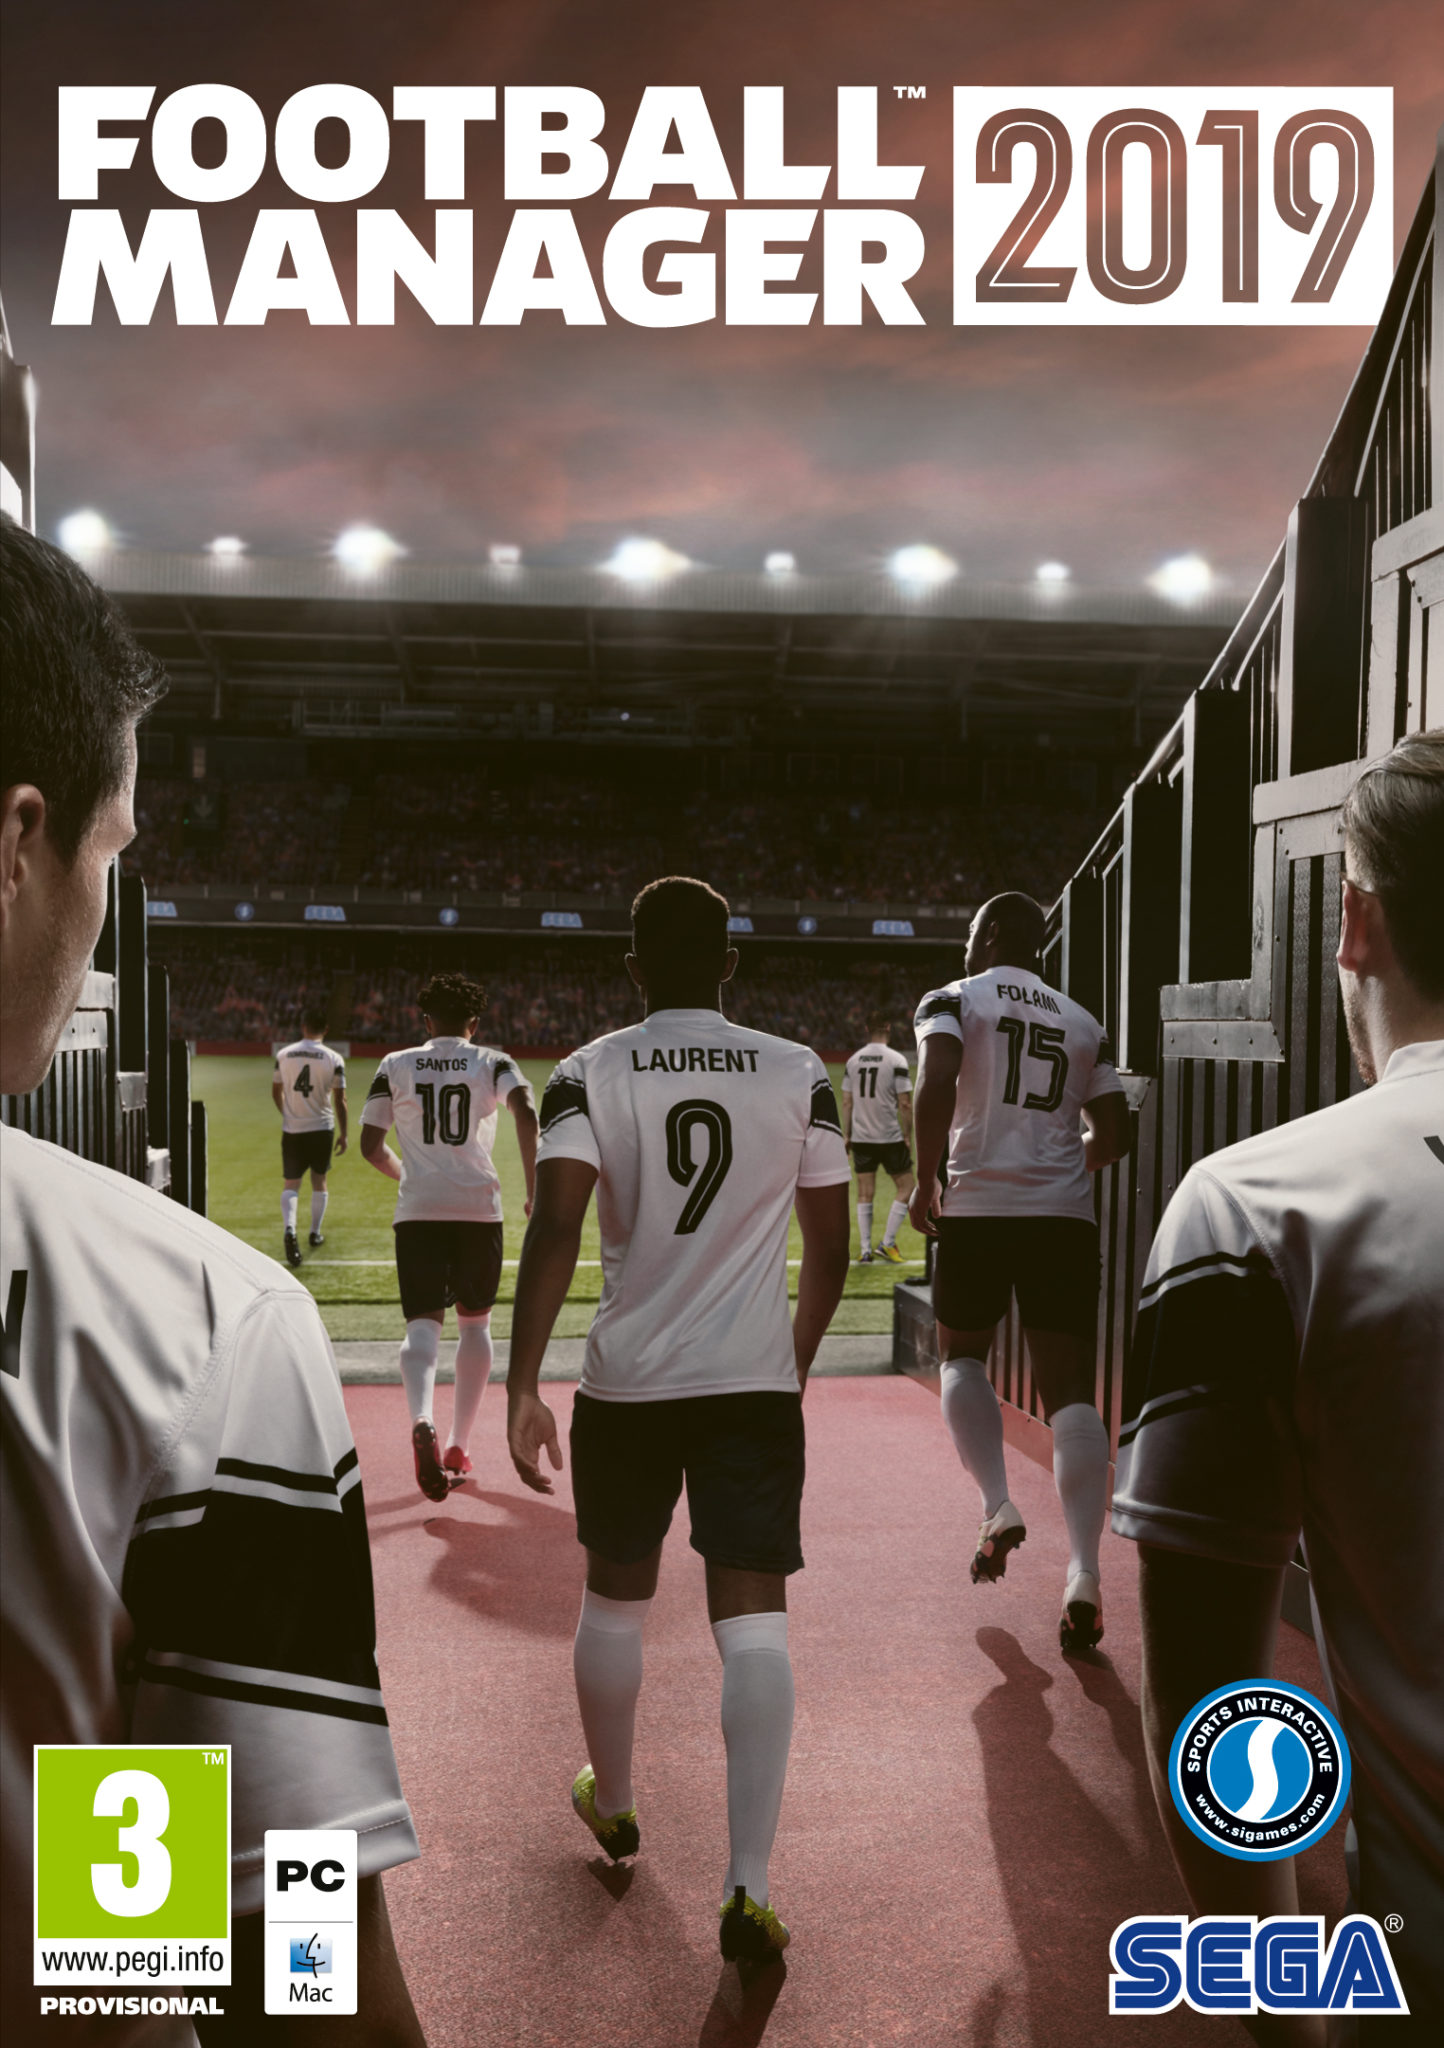 Box cover of Football Manager 2019 for PC